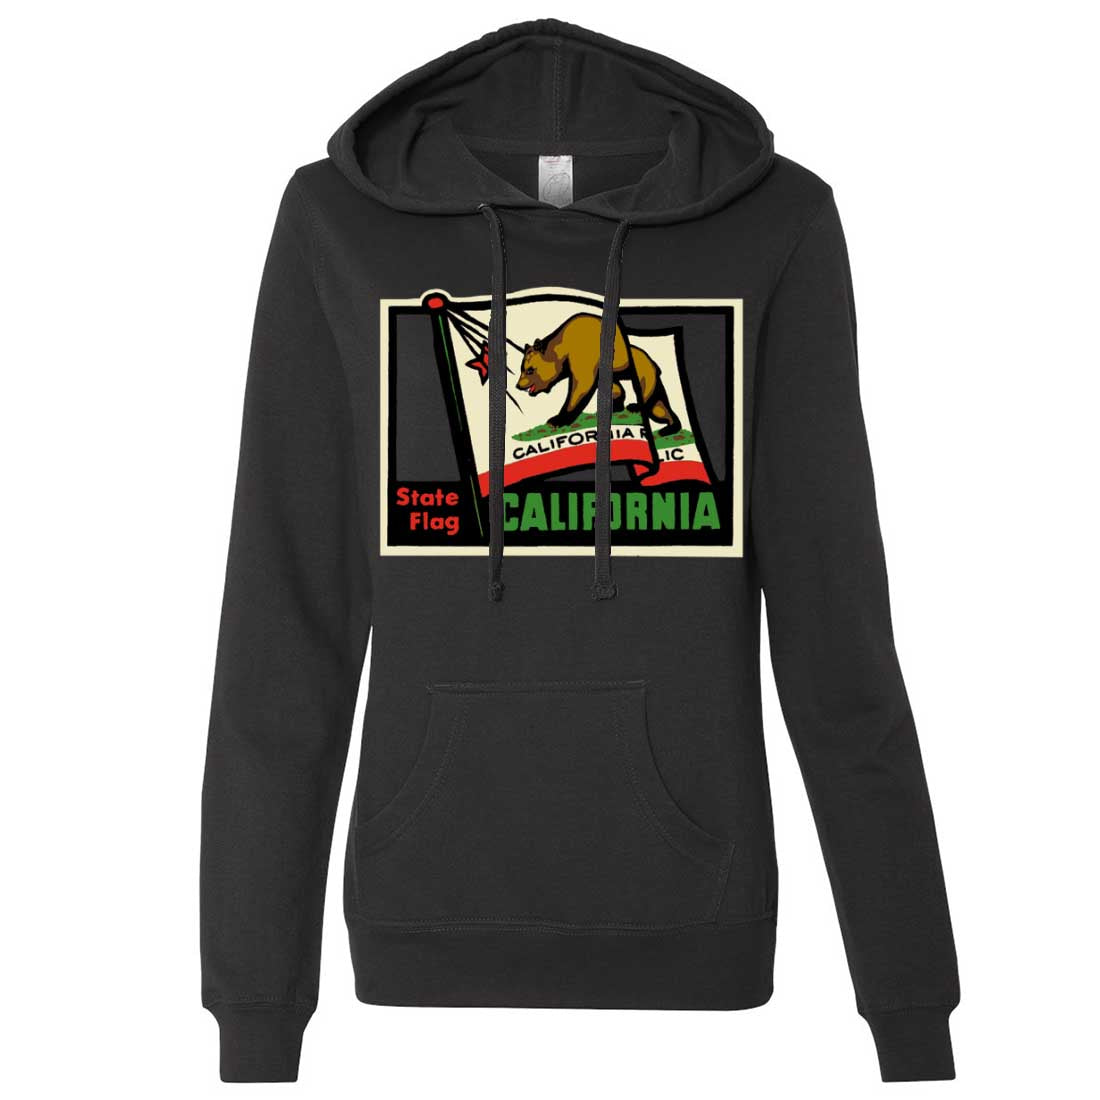 California Vintage State Flag Ladies Lightweight Fitted Hoodie